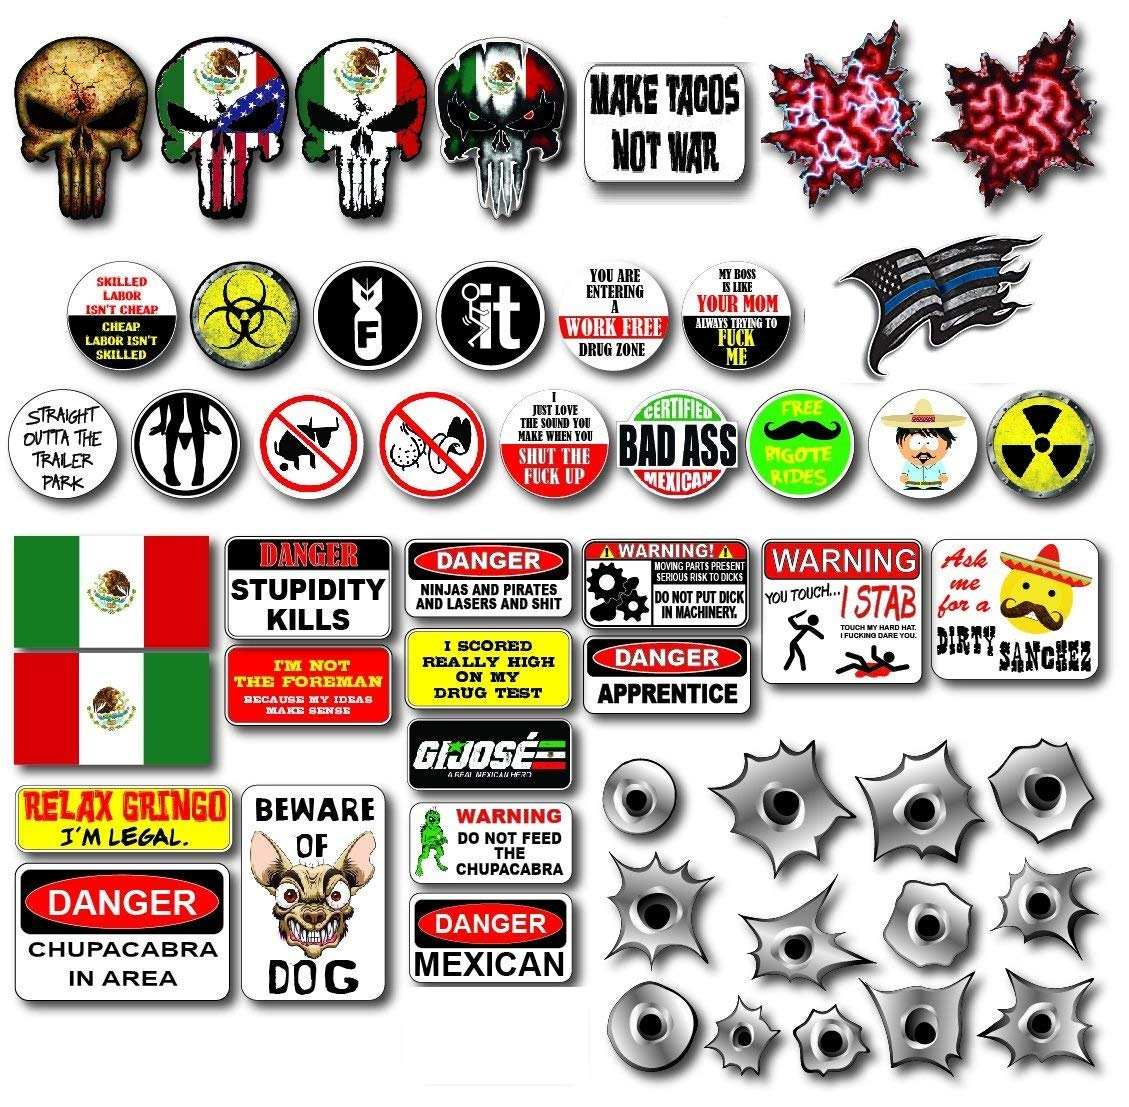 Premium mexico funny sticker pack 54 stickers for your car bumper hard hattoolbox construction site or laptop variety pack